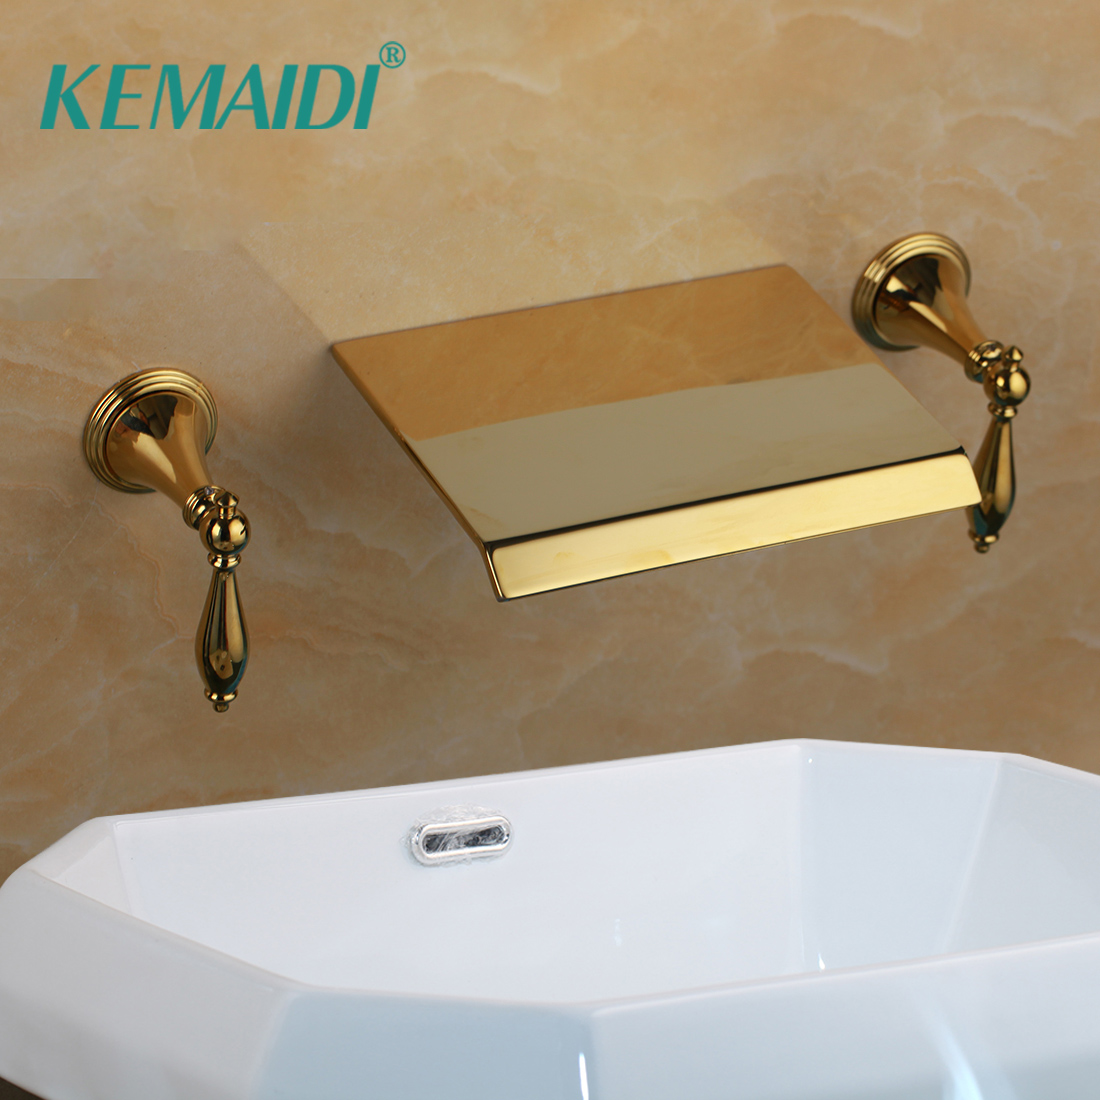 KEMAIDI Bathtub Faucet Waterfall Spout Deck Support Mixer Tap Hot and Cold Water Ceramic Valve Faucet 3 pcs Golden Faucets